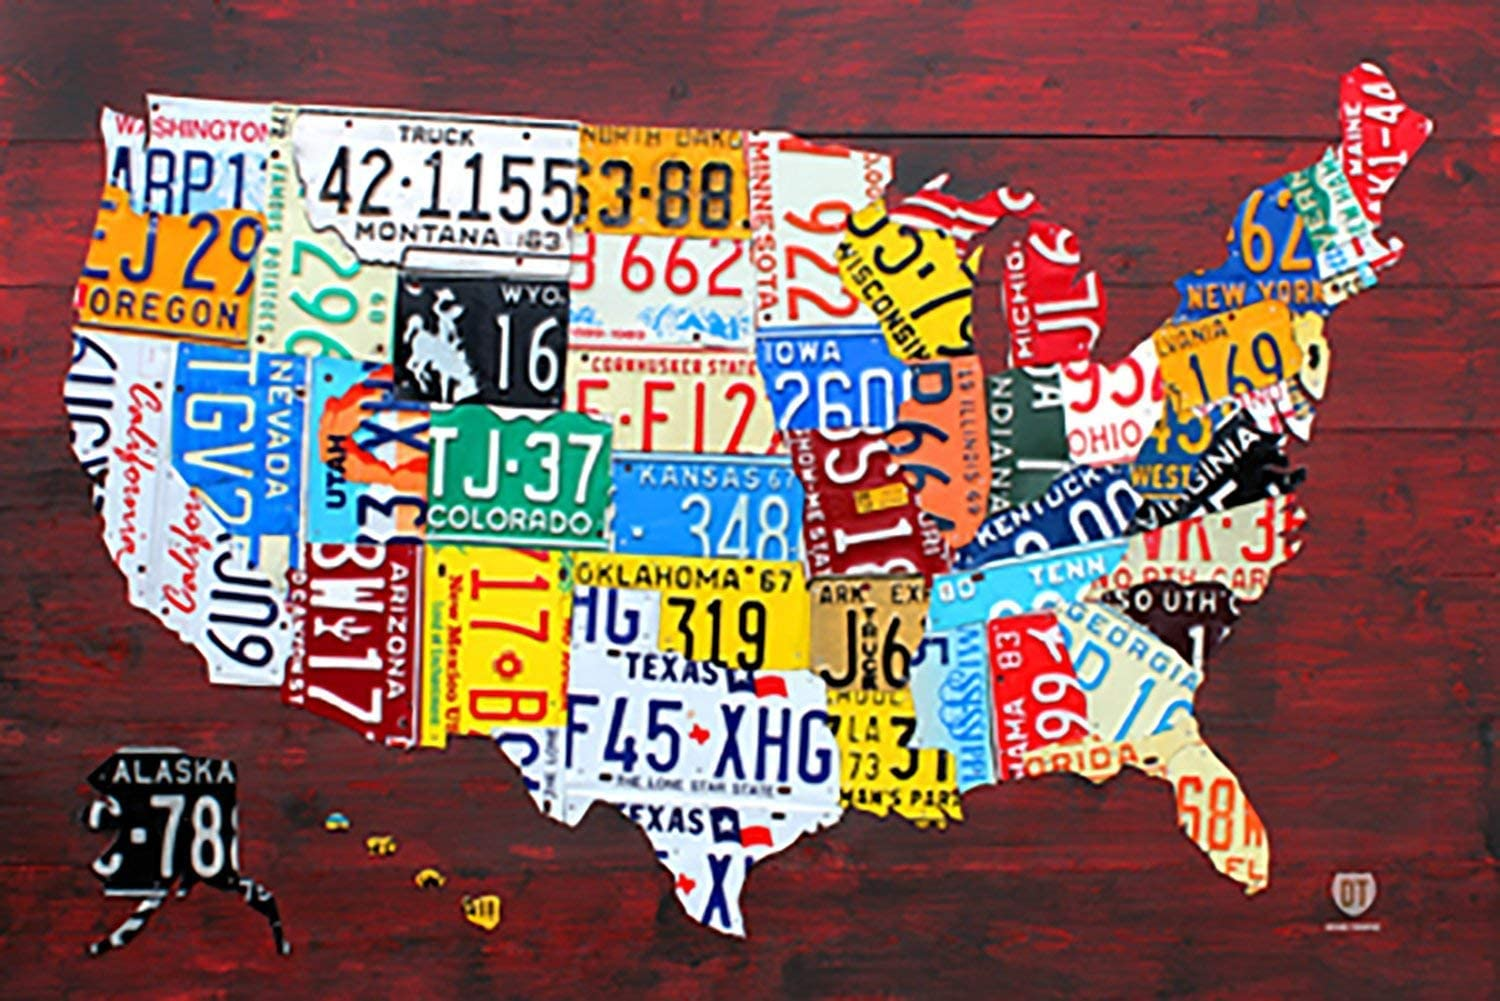 Us Map License Plates Amazon.com: Laminated License Plate Map of the United States